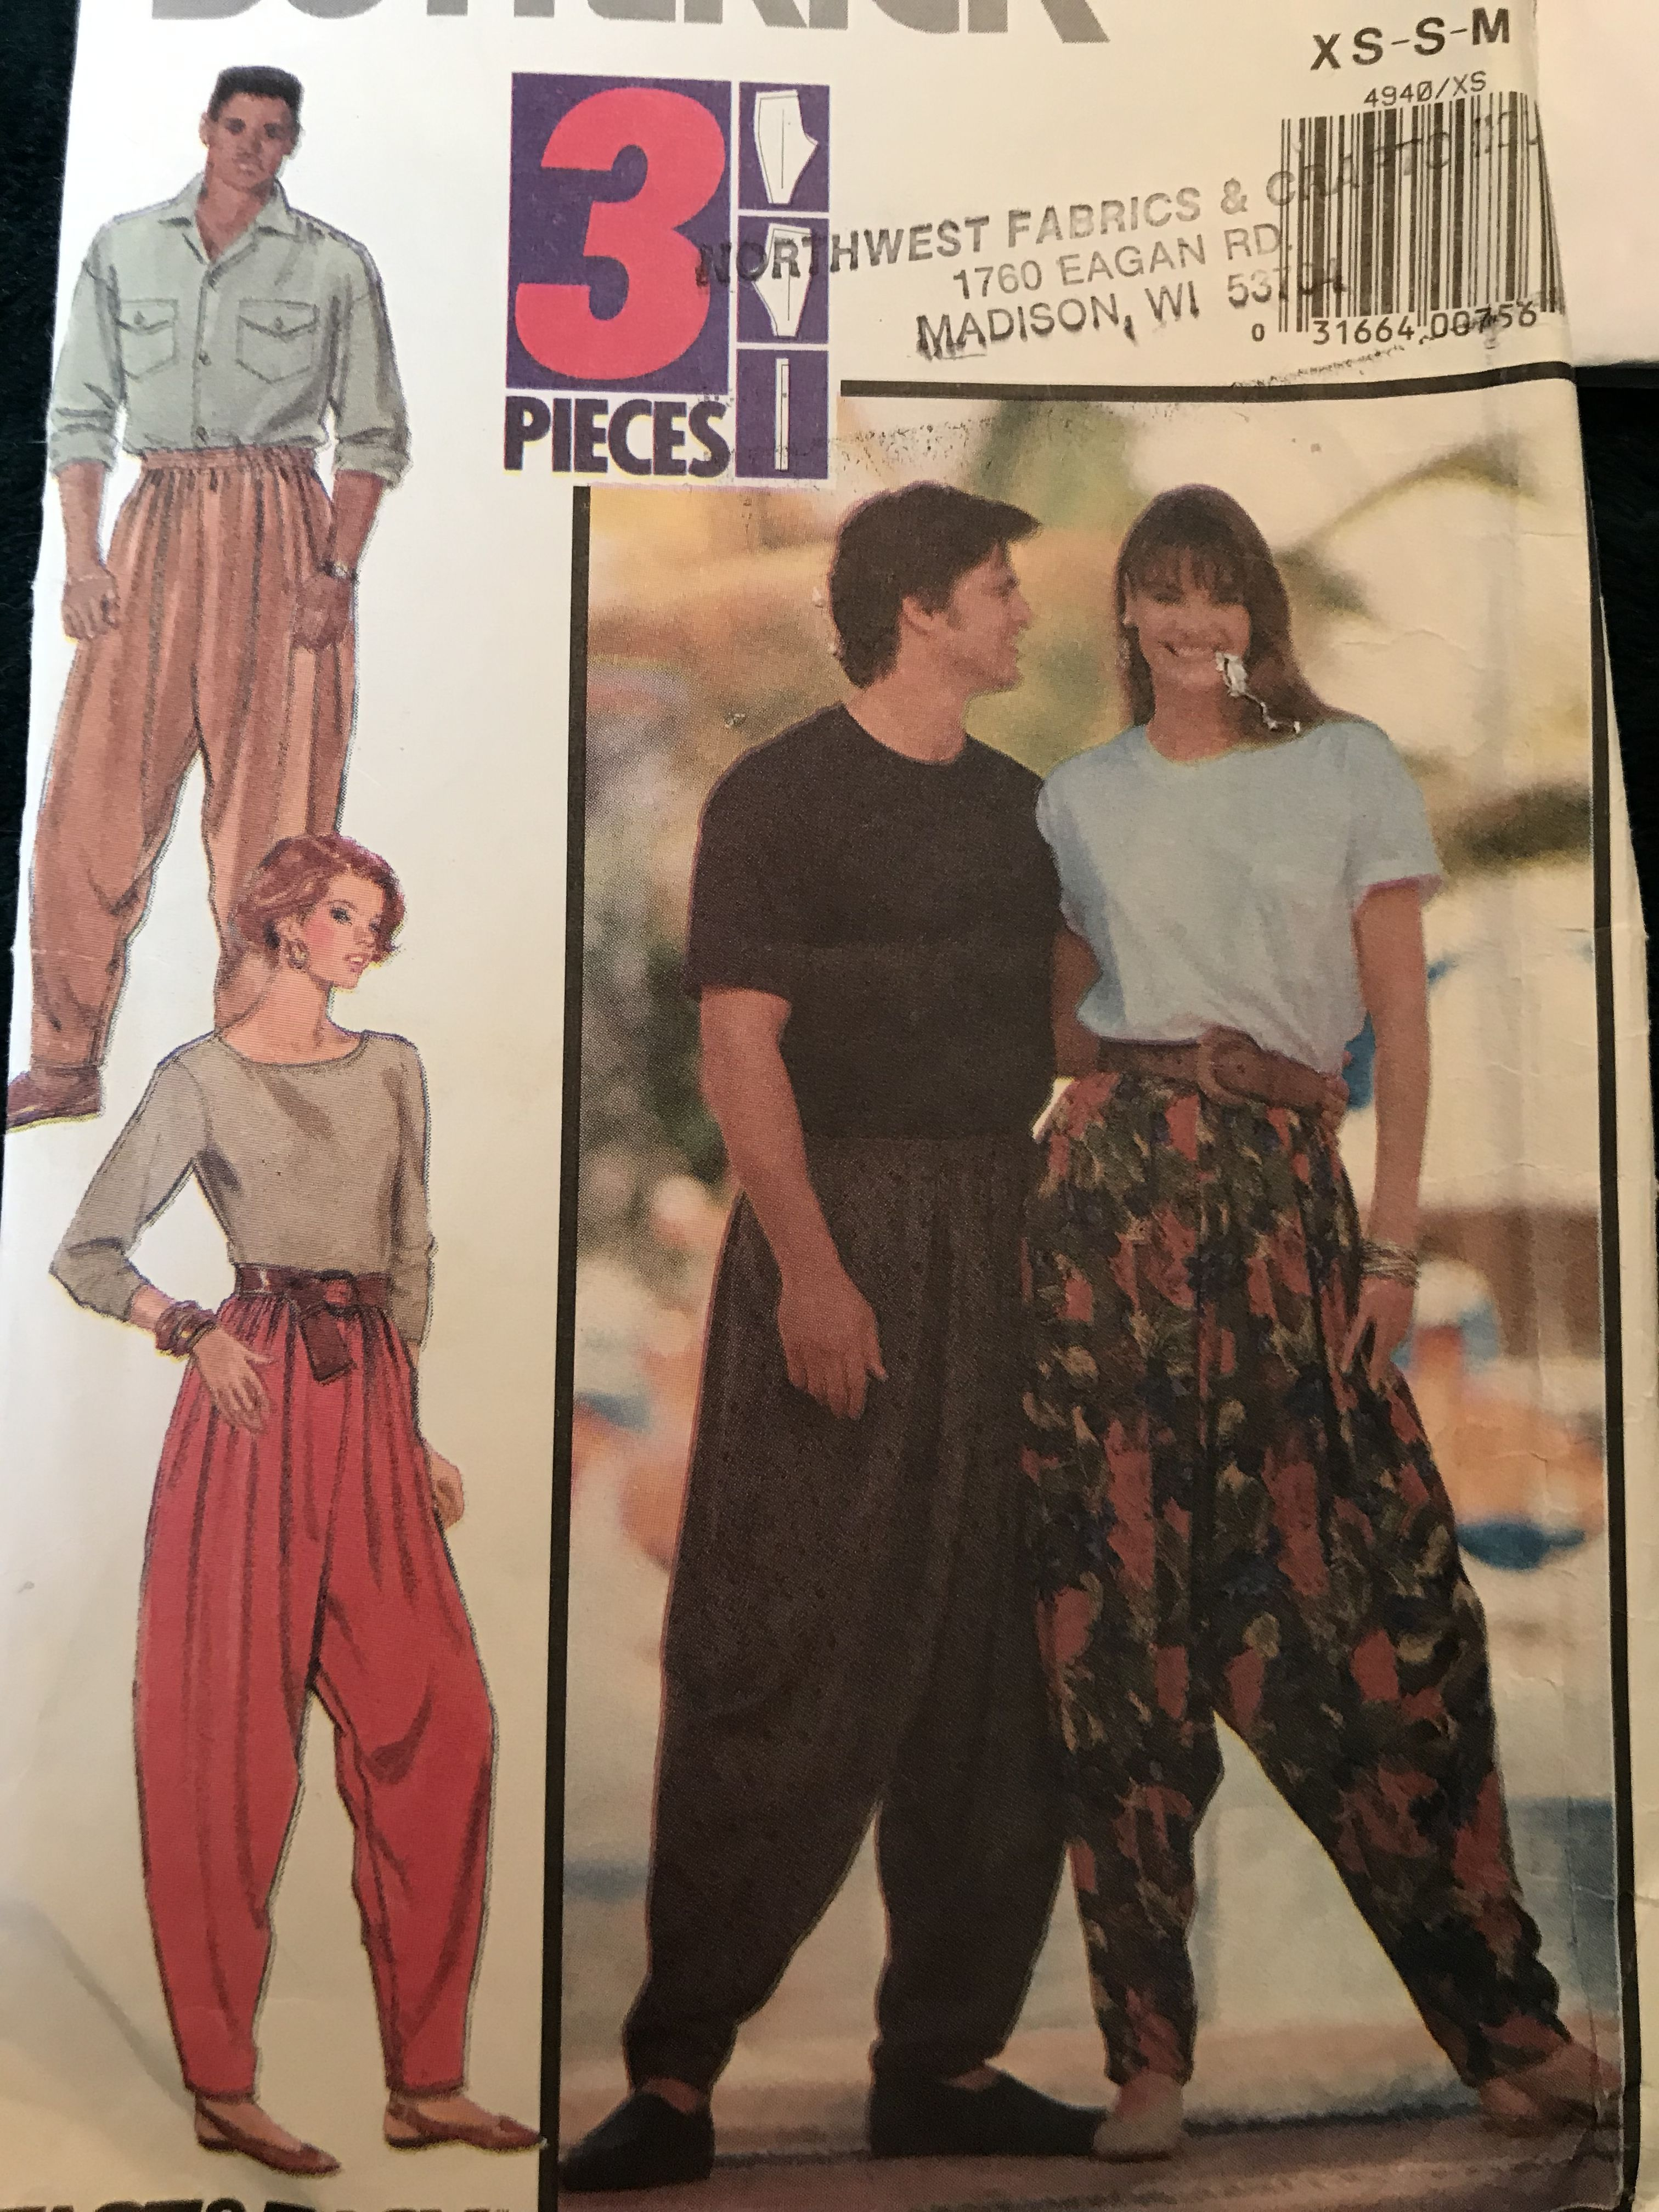 Unisex Loose Fitting Pants With Images Hammer Pants Mc Hammer